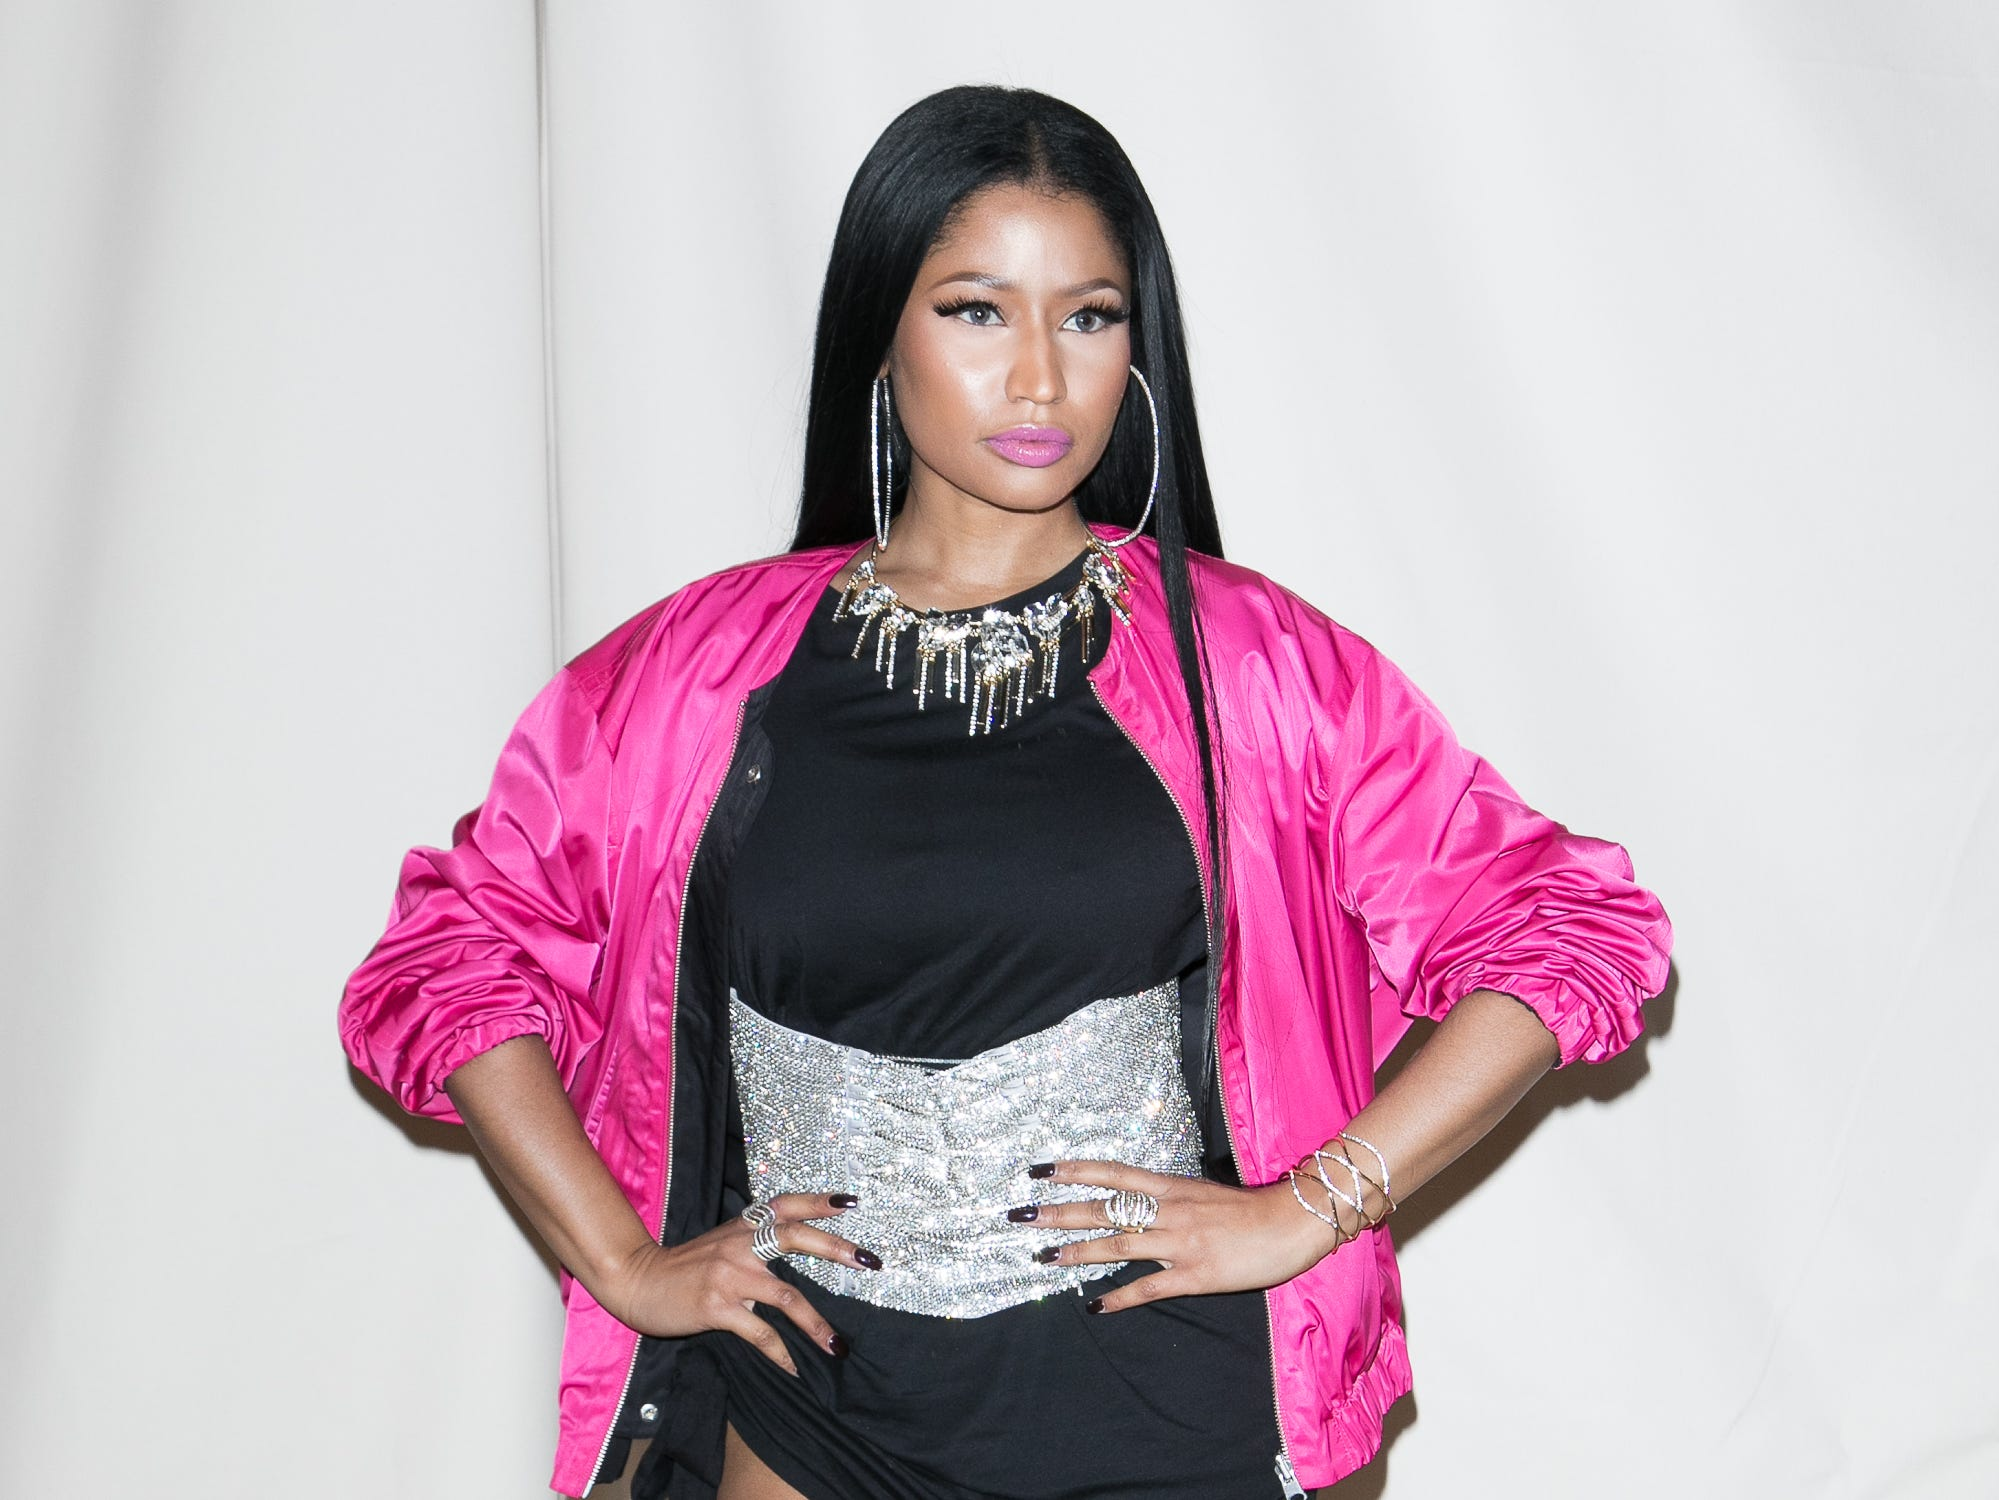 PARIS, FRANCE - MARCH 01:  Singer Nicki Minaj attends the H&M Studio show as part of the Paris Fashion Week on March 1, 2017 in Paris, France.  (Photo by Marc Piasecki/WireImage) ORG XMIT: 700013536 ORIG FILE ID: 646878388